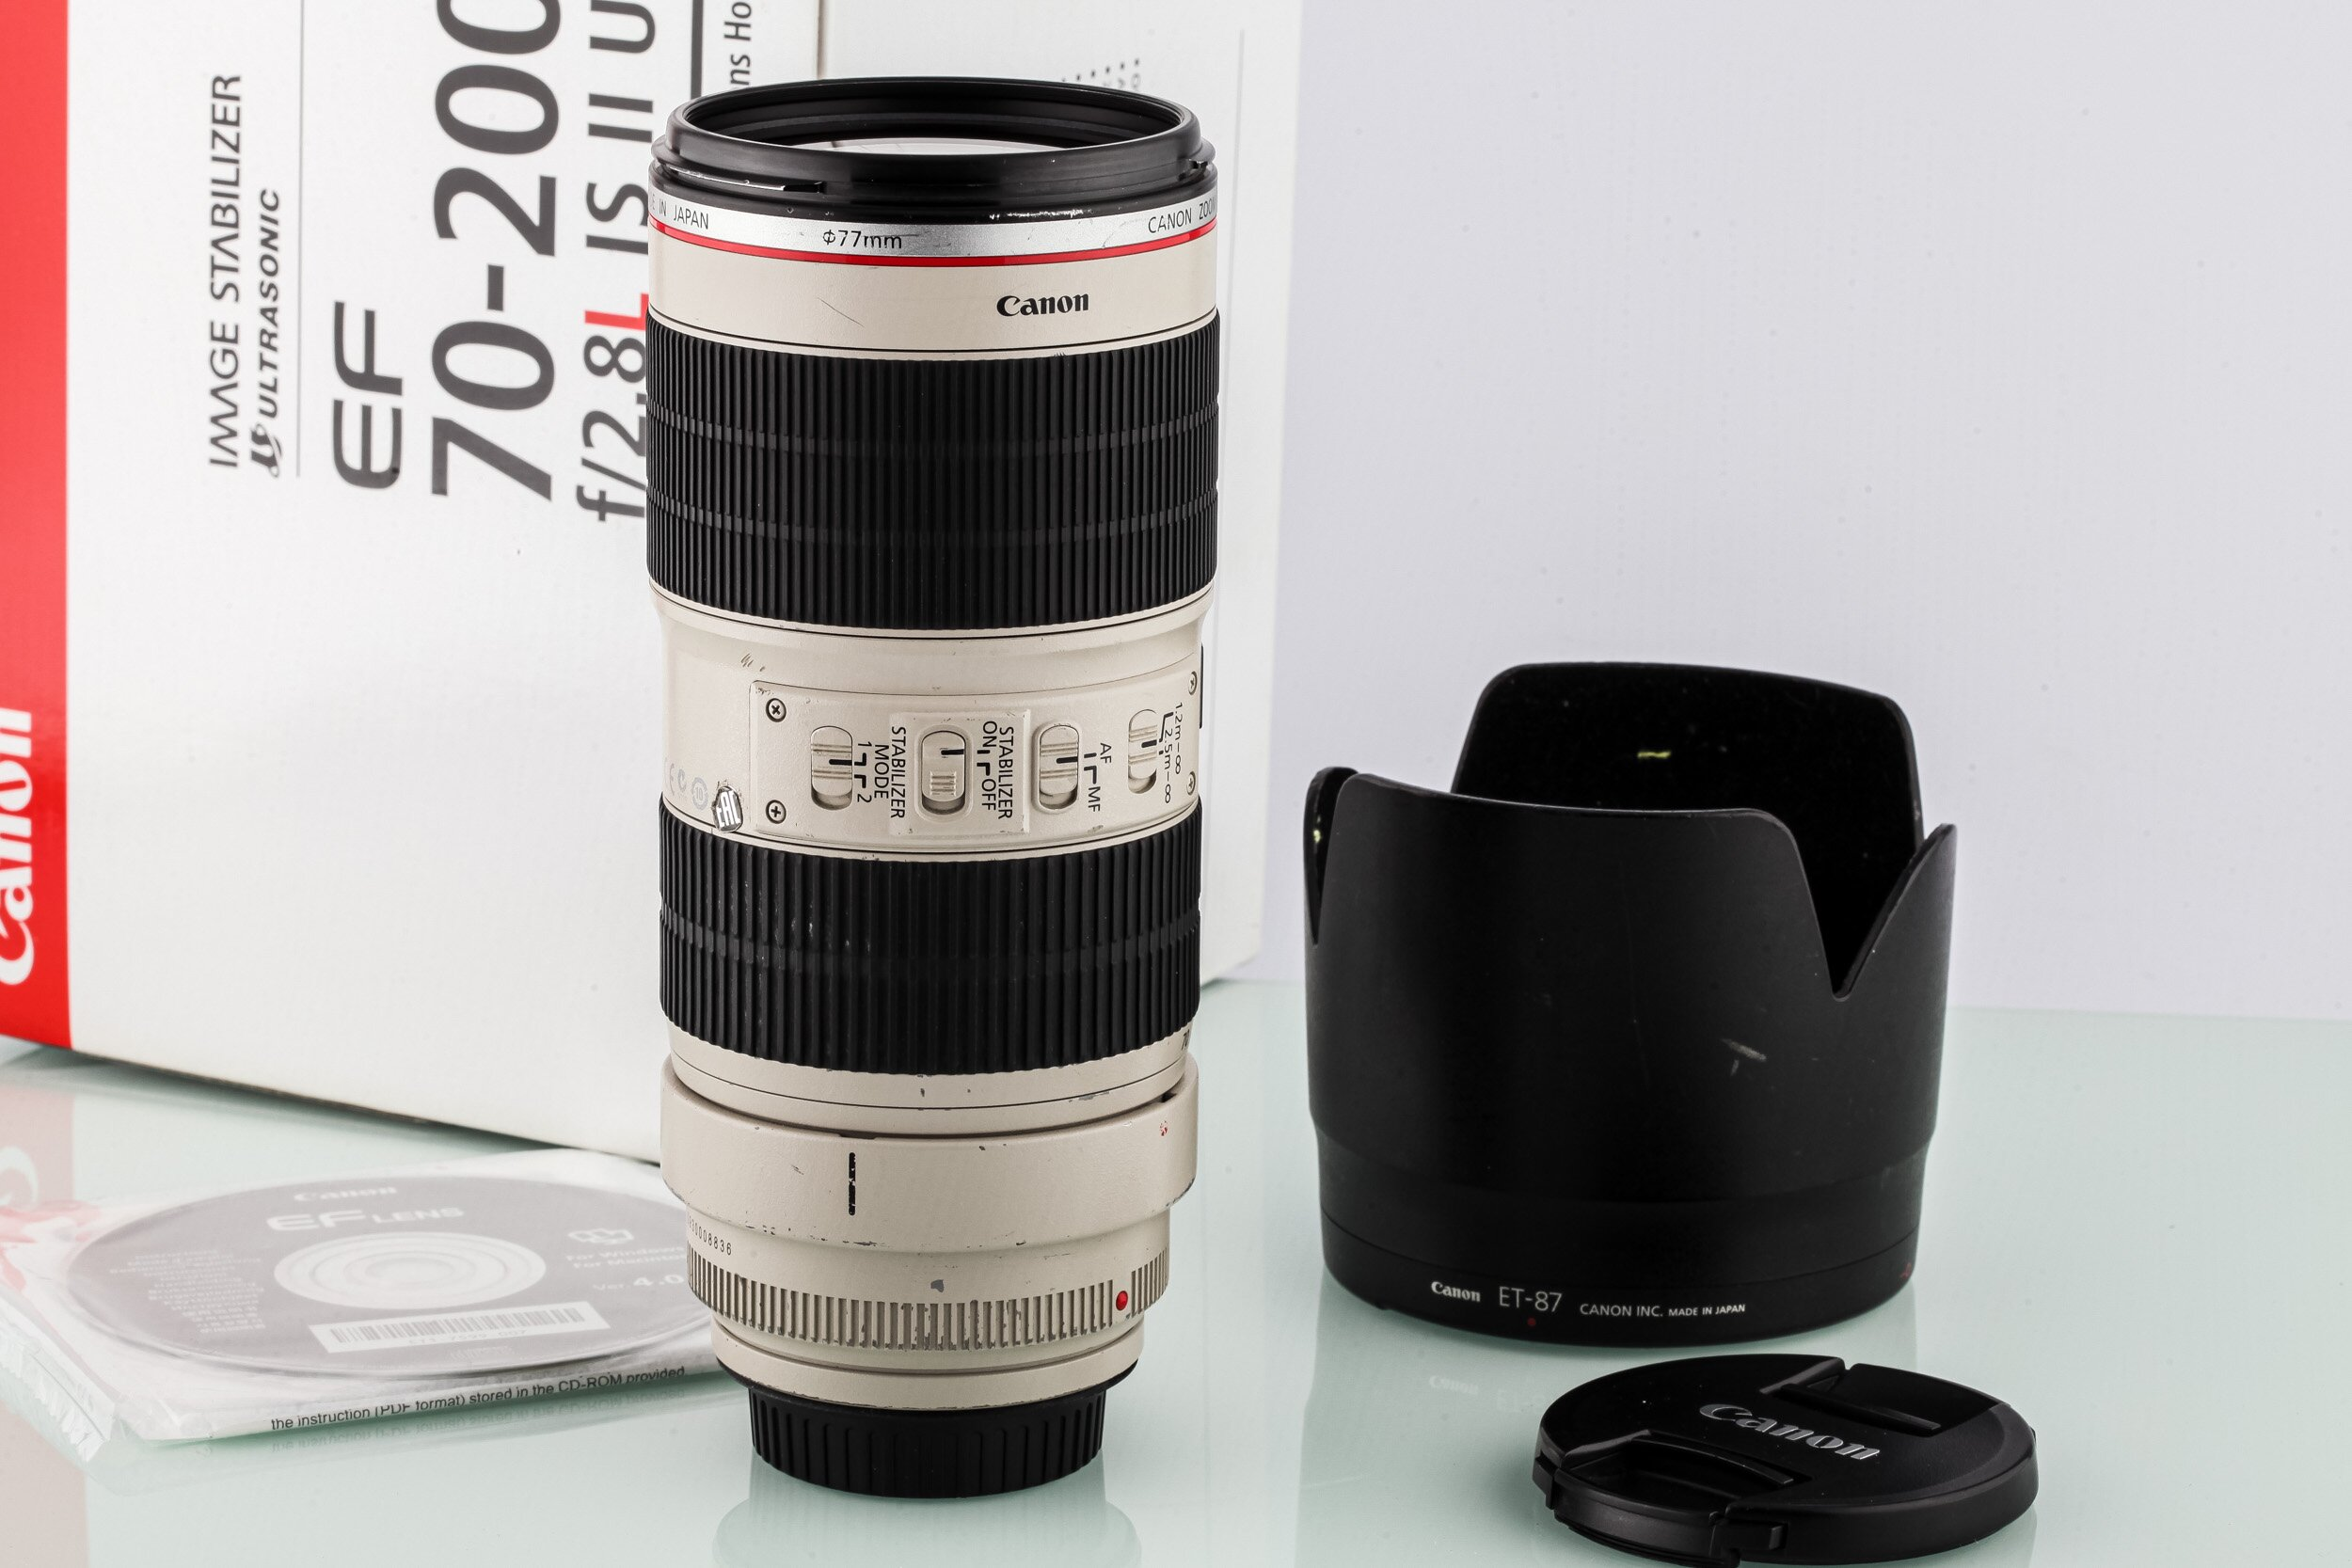 Canon EF 70-200mm 2,8 L IS II USM